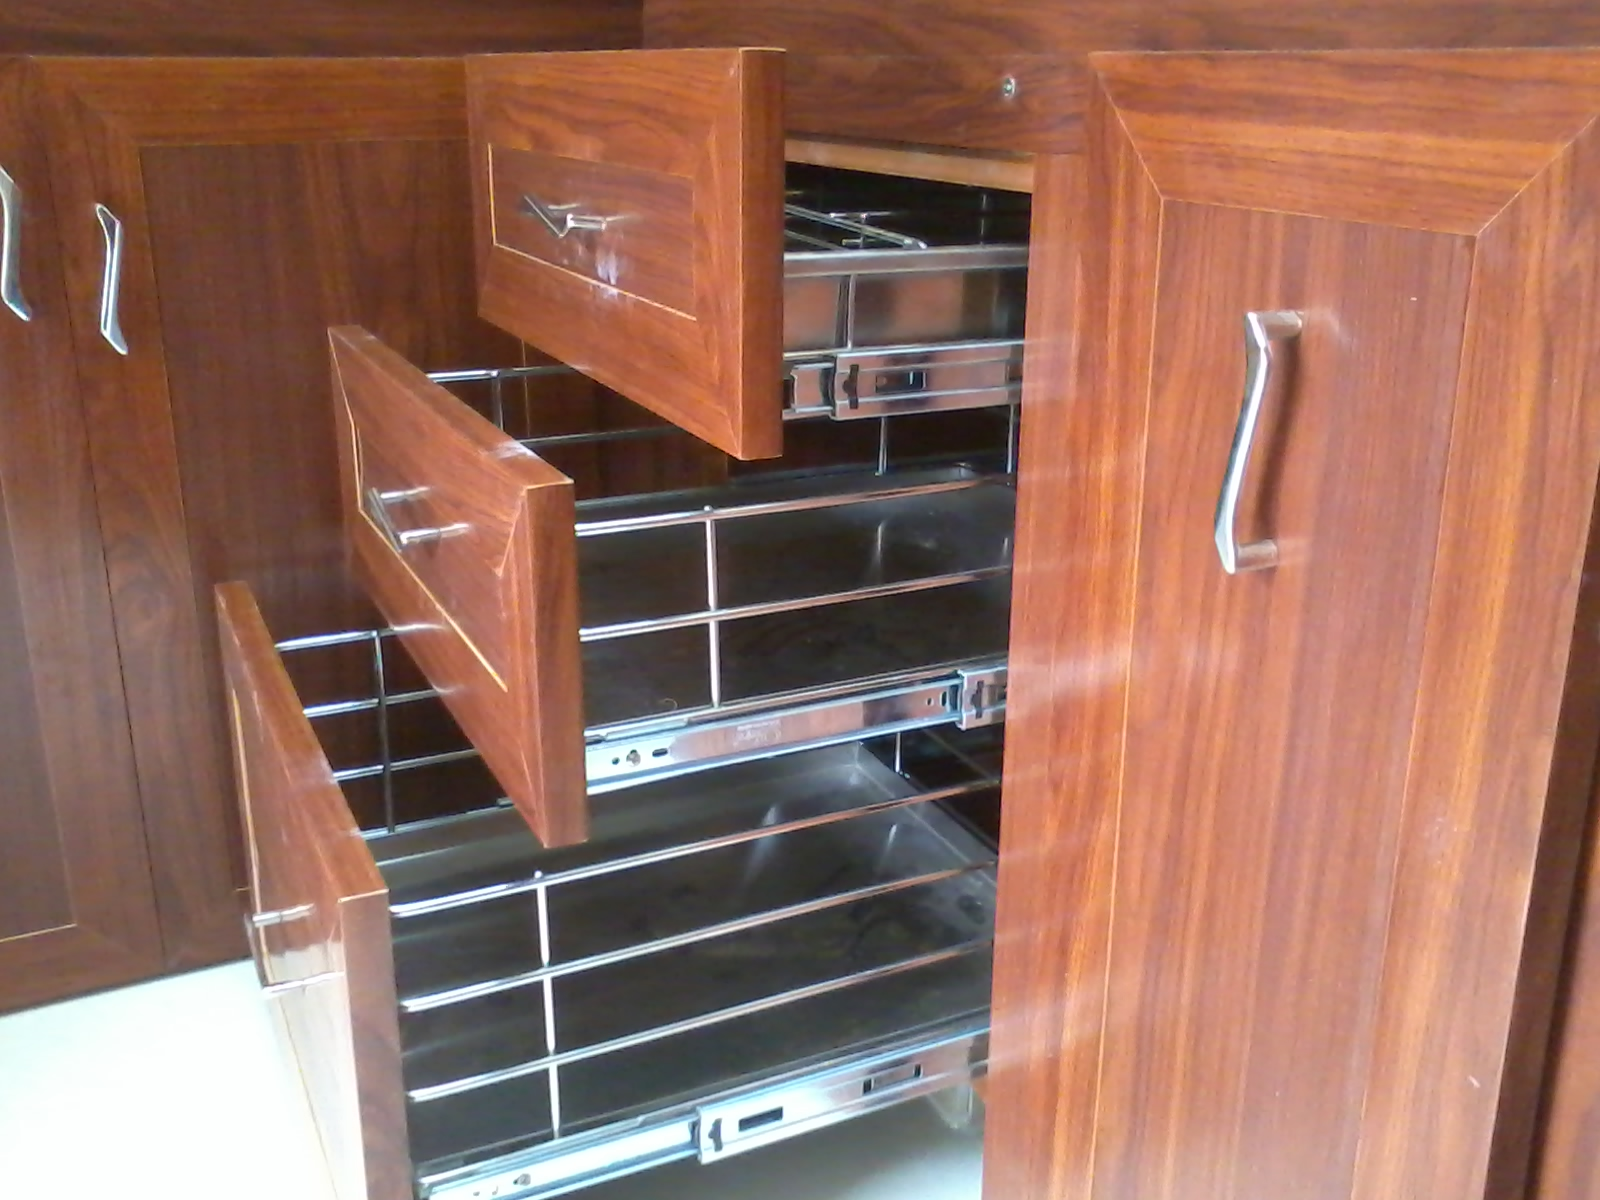 cabinetry cabinet size full modular gallant wood design of cabinets unfinished cupboards review prefab kitchen rta costco cherry company kraftmaid